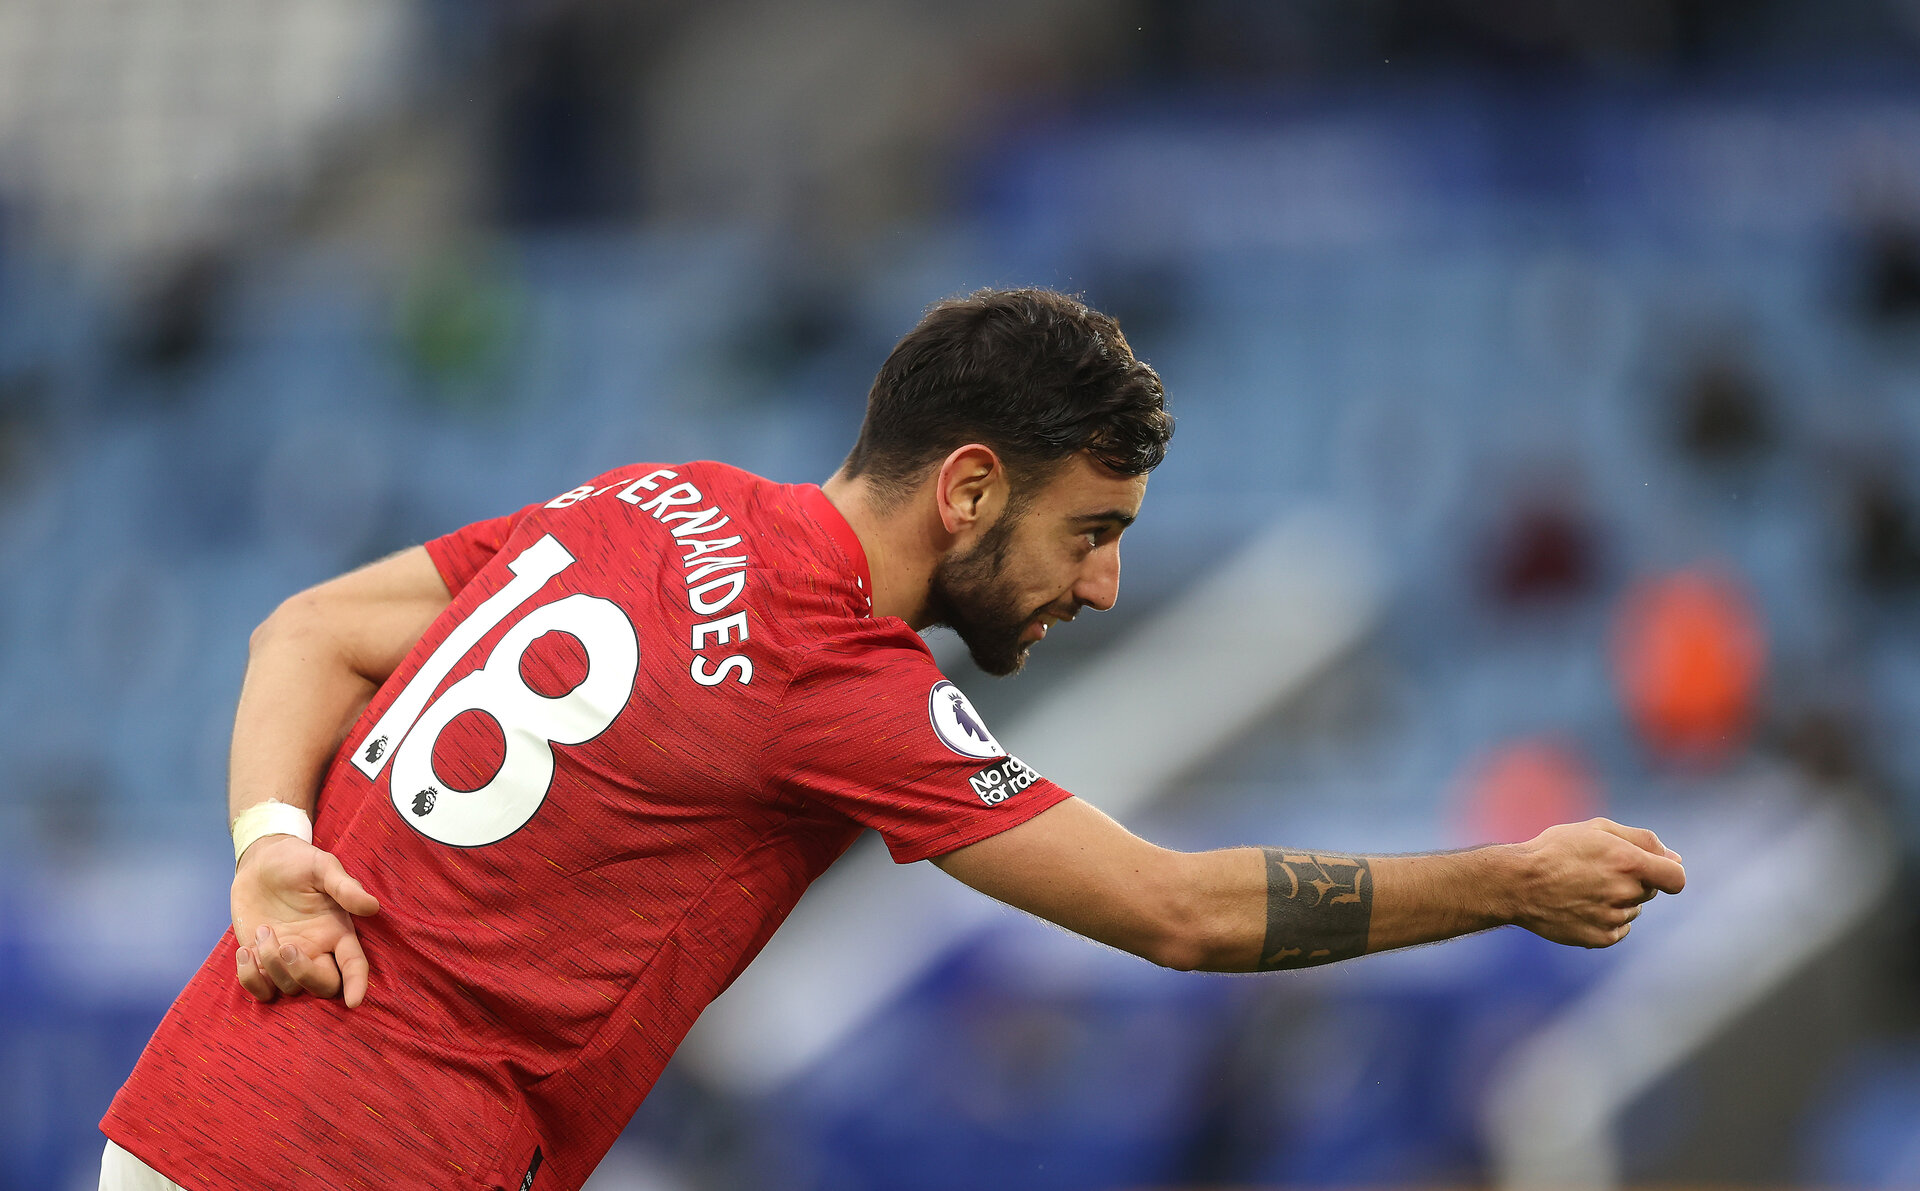 LEICESTER, ENGLAND - DECEMBER 26: Bruno Fernandes of Manchester United celebrates after scoring their sides second goal during the Premier League match between Leicester City and Manchester United at The King Power Stadium on December 26, 2020 in Leicester, England. The match will be played without fans, behind closed doors as a Covid-19 precaution. (Photo by Carl Recine -Pool/Getty Images)